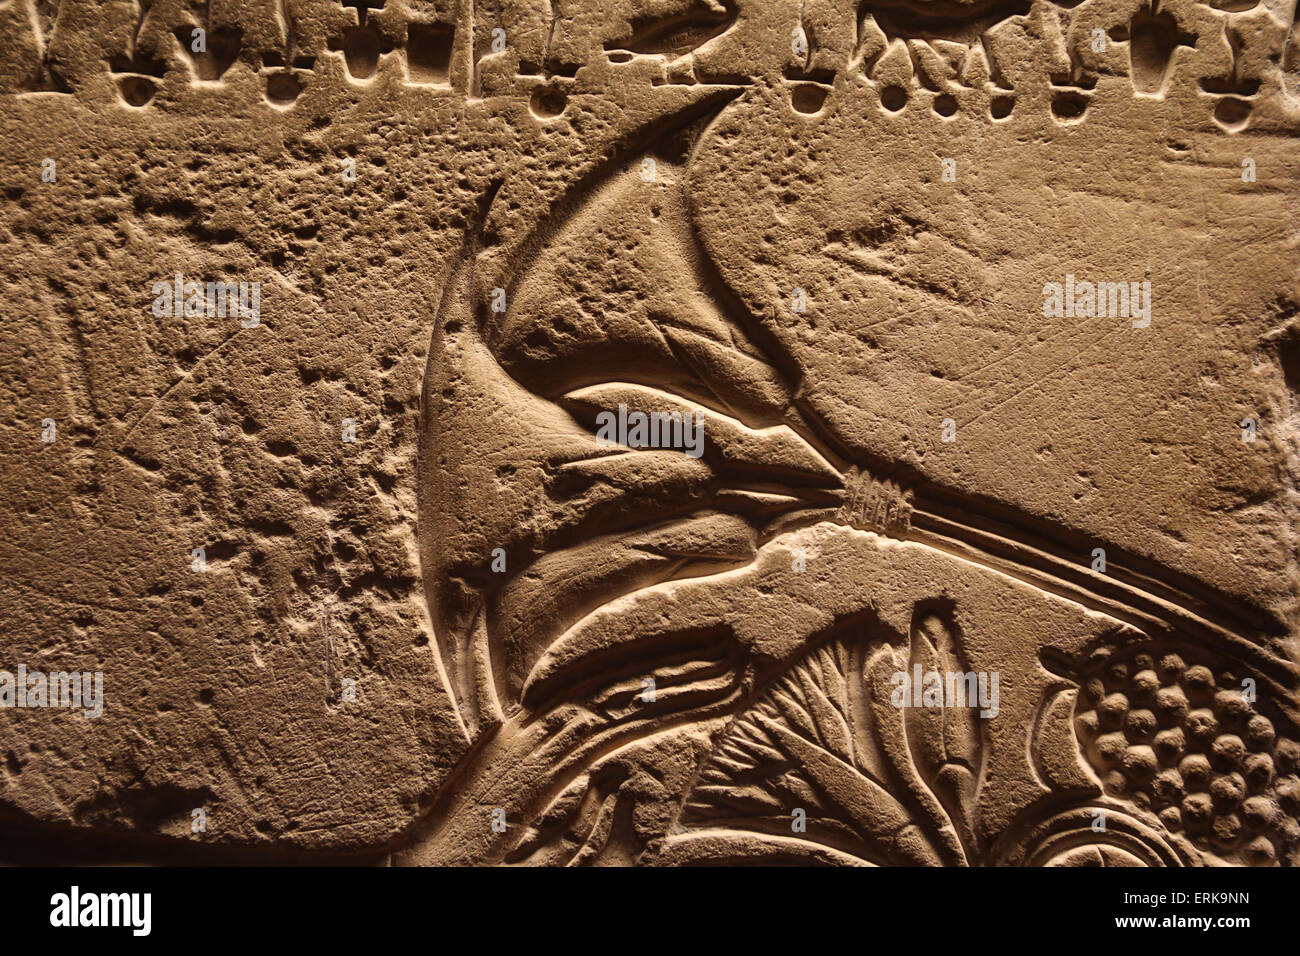 Egyptian lotus flower stock photos egyptian lotus flower stock ancient egypt relief lotus flower vatican museums stock image mightylinksfo